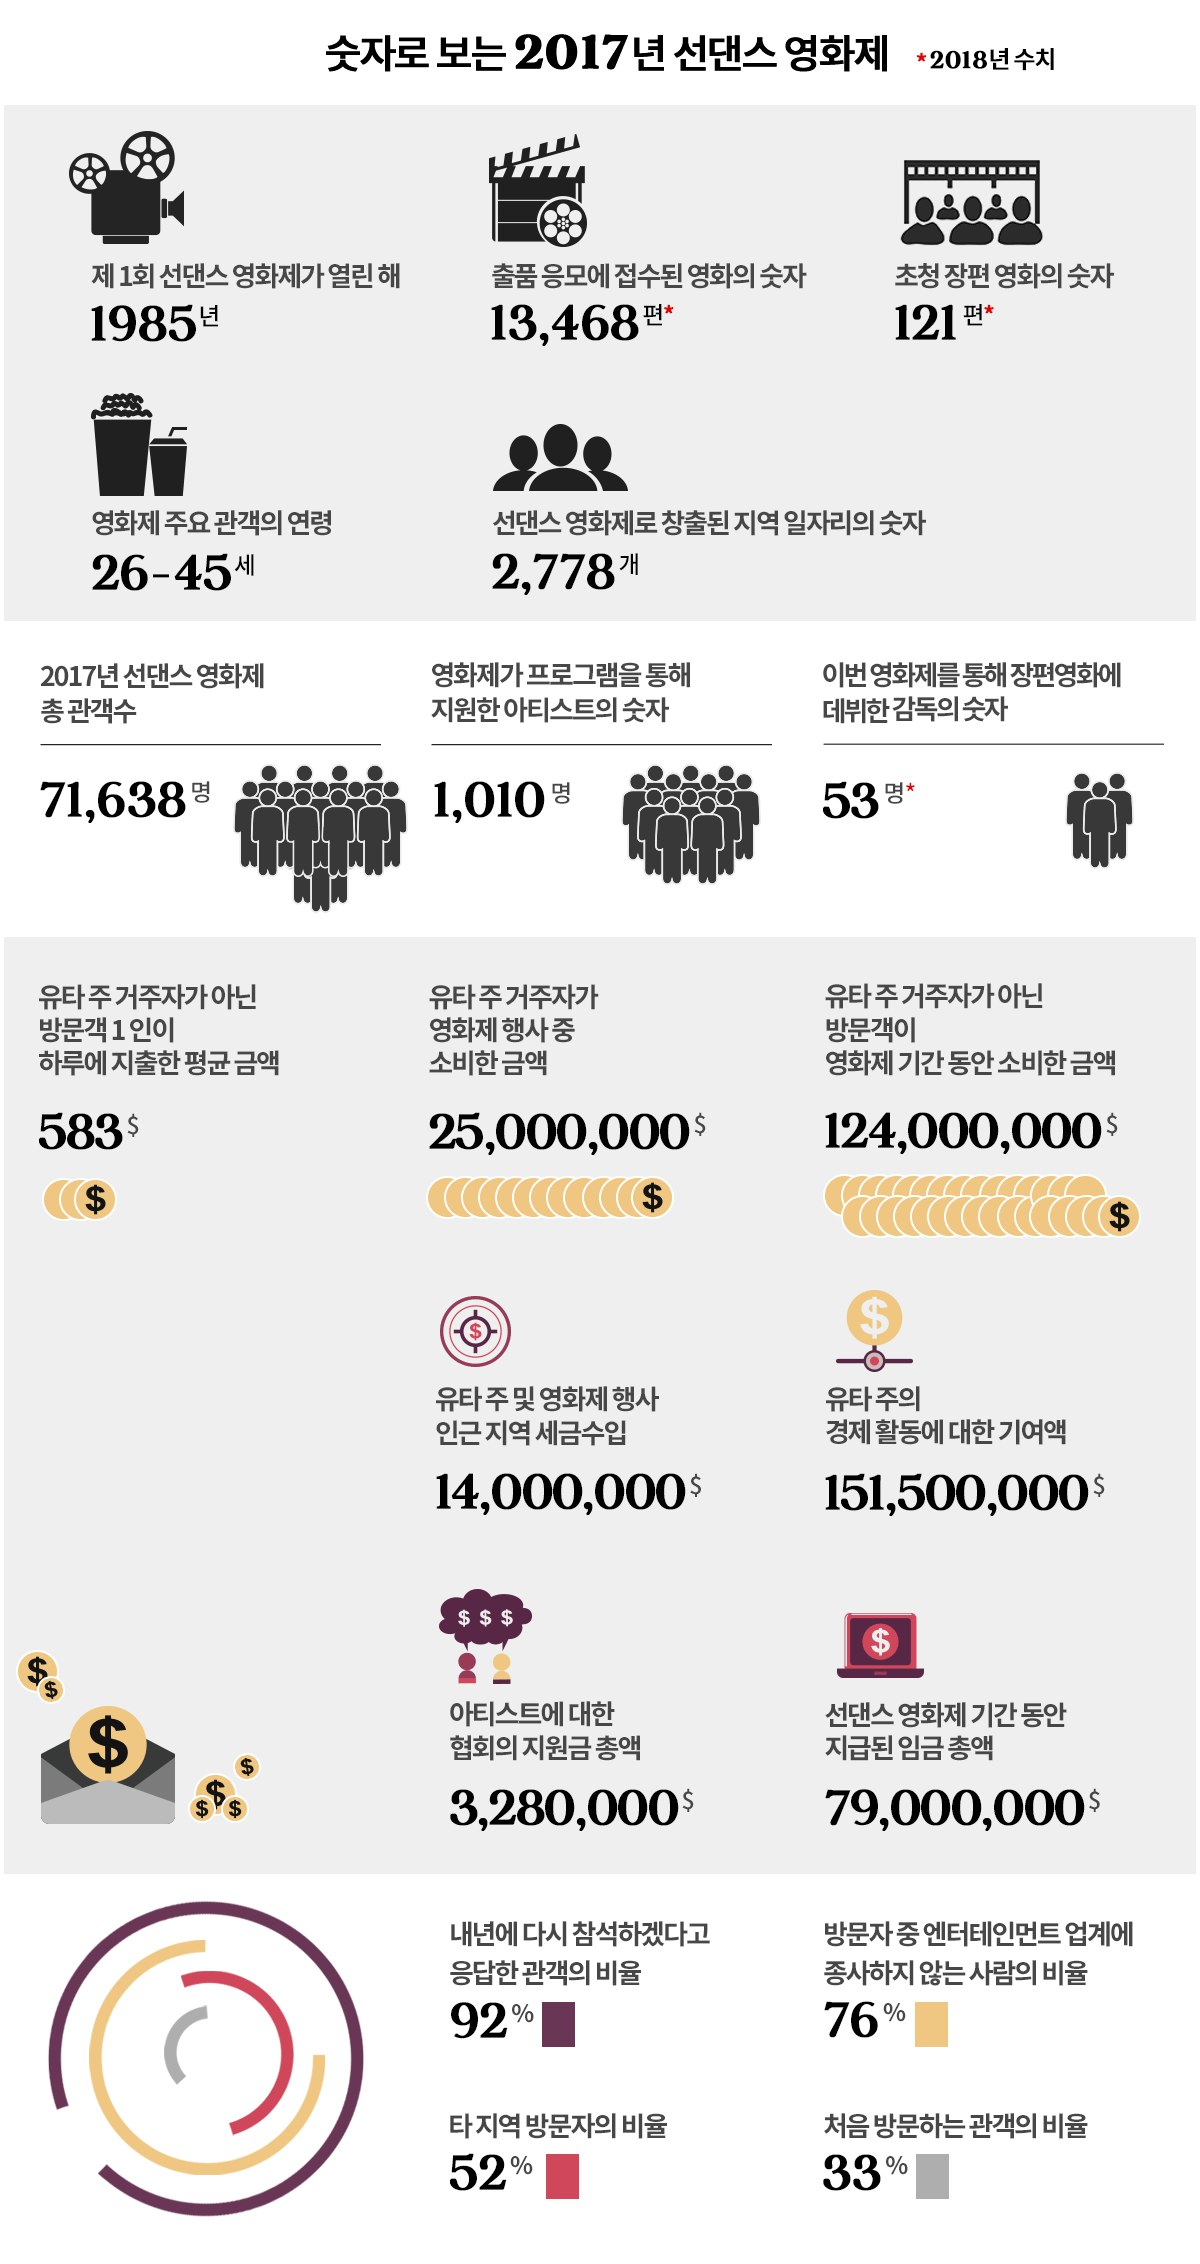 출처: Economic Impact 2017 Sundance Film Festival, Sundance Institute Fact Sheet 2017 (그래픽: 김영미)